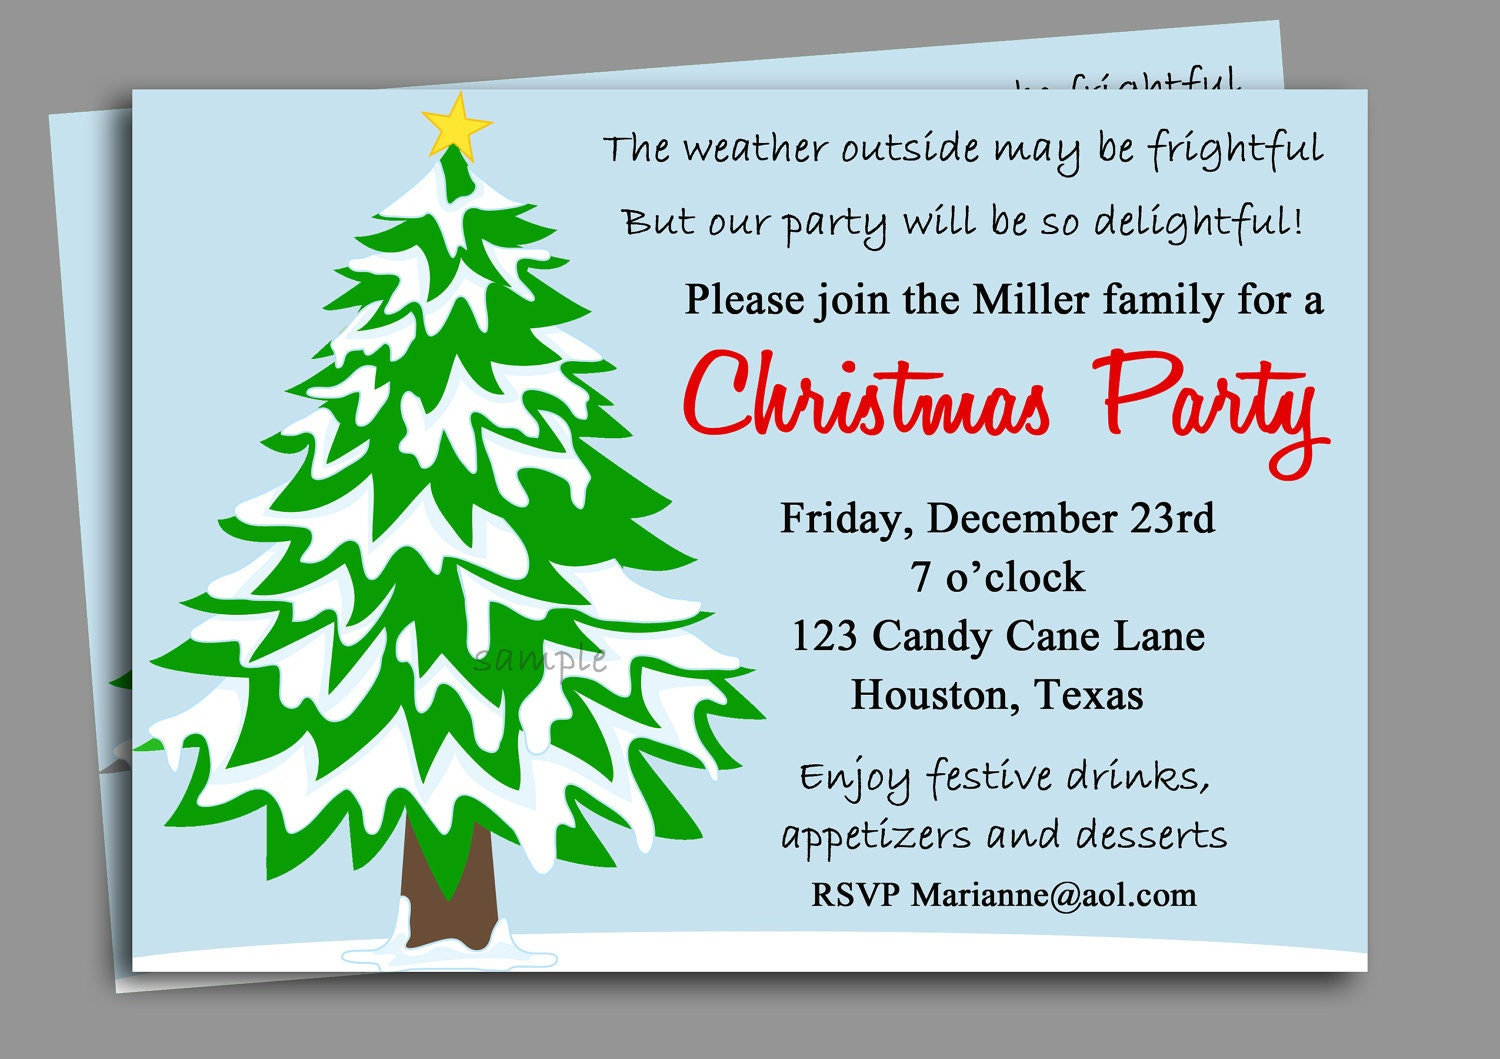 Christmas Party Invitations Wording is one of our best ideas you might choose for invitation design